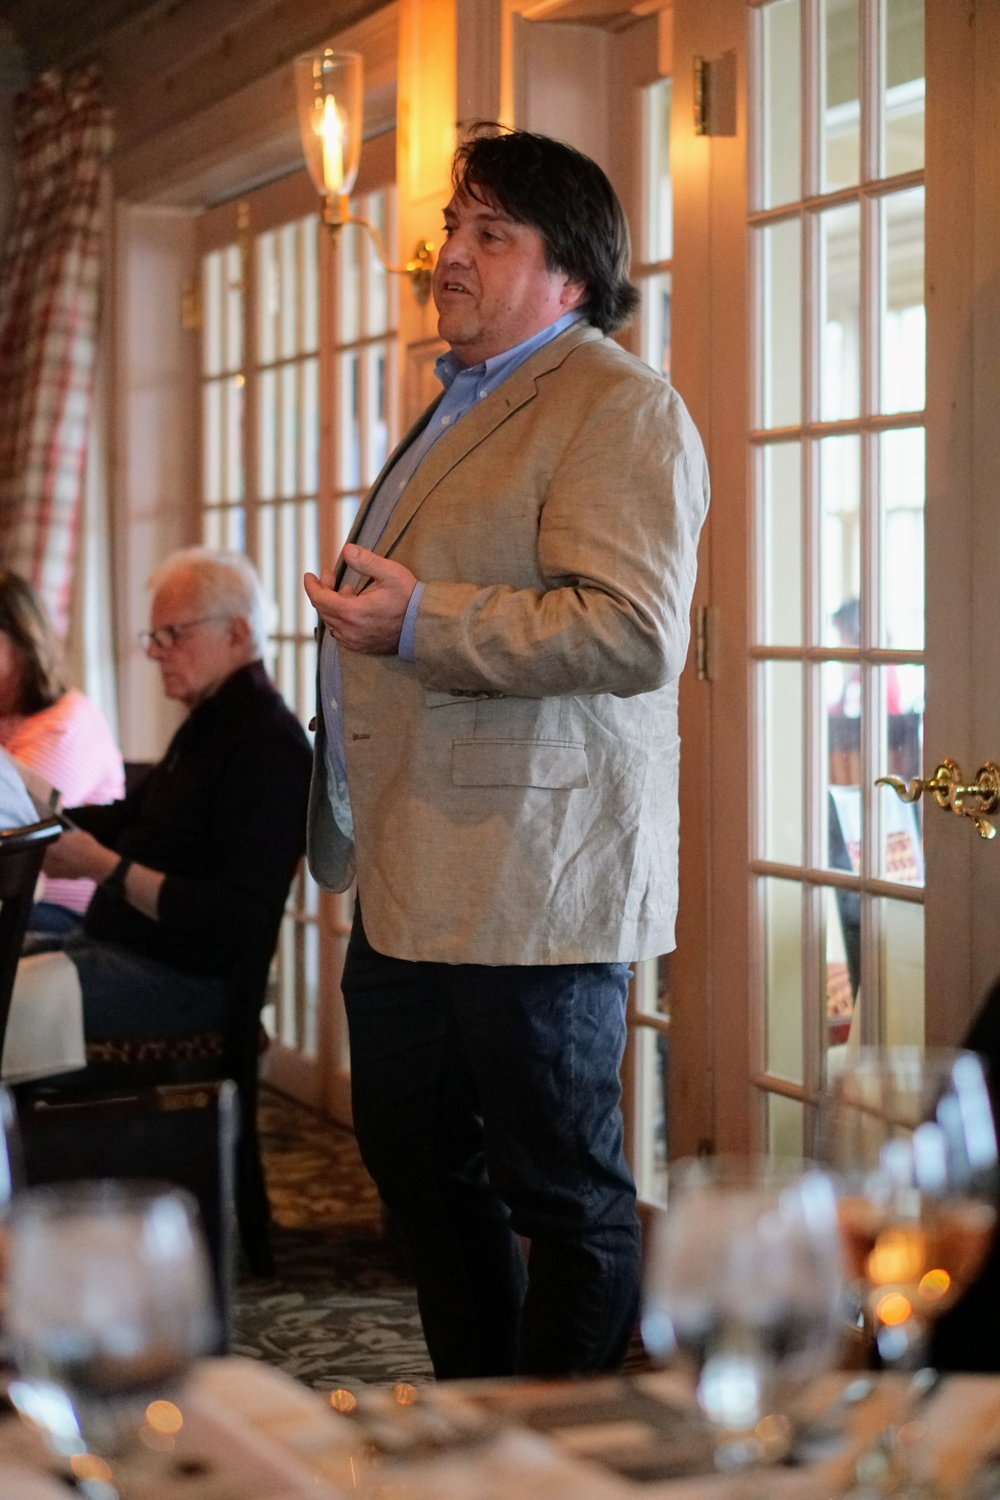 Morten Hallgren - Winemaker of White Birch Vineyards and Ravines Wine Cellars - Morten explaining the rise of and subtleties of the wines of the Finger Lakes to the guests.